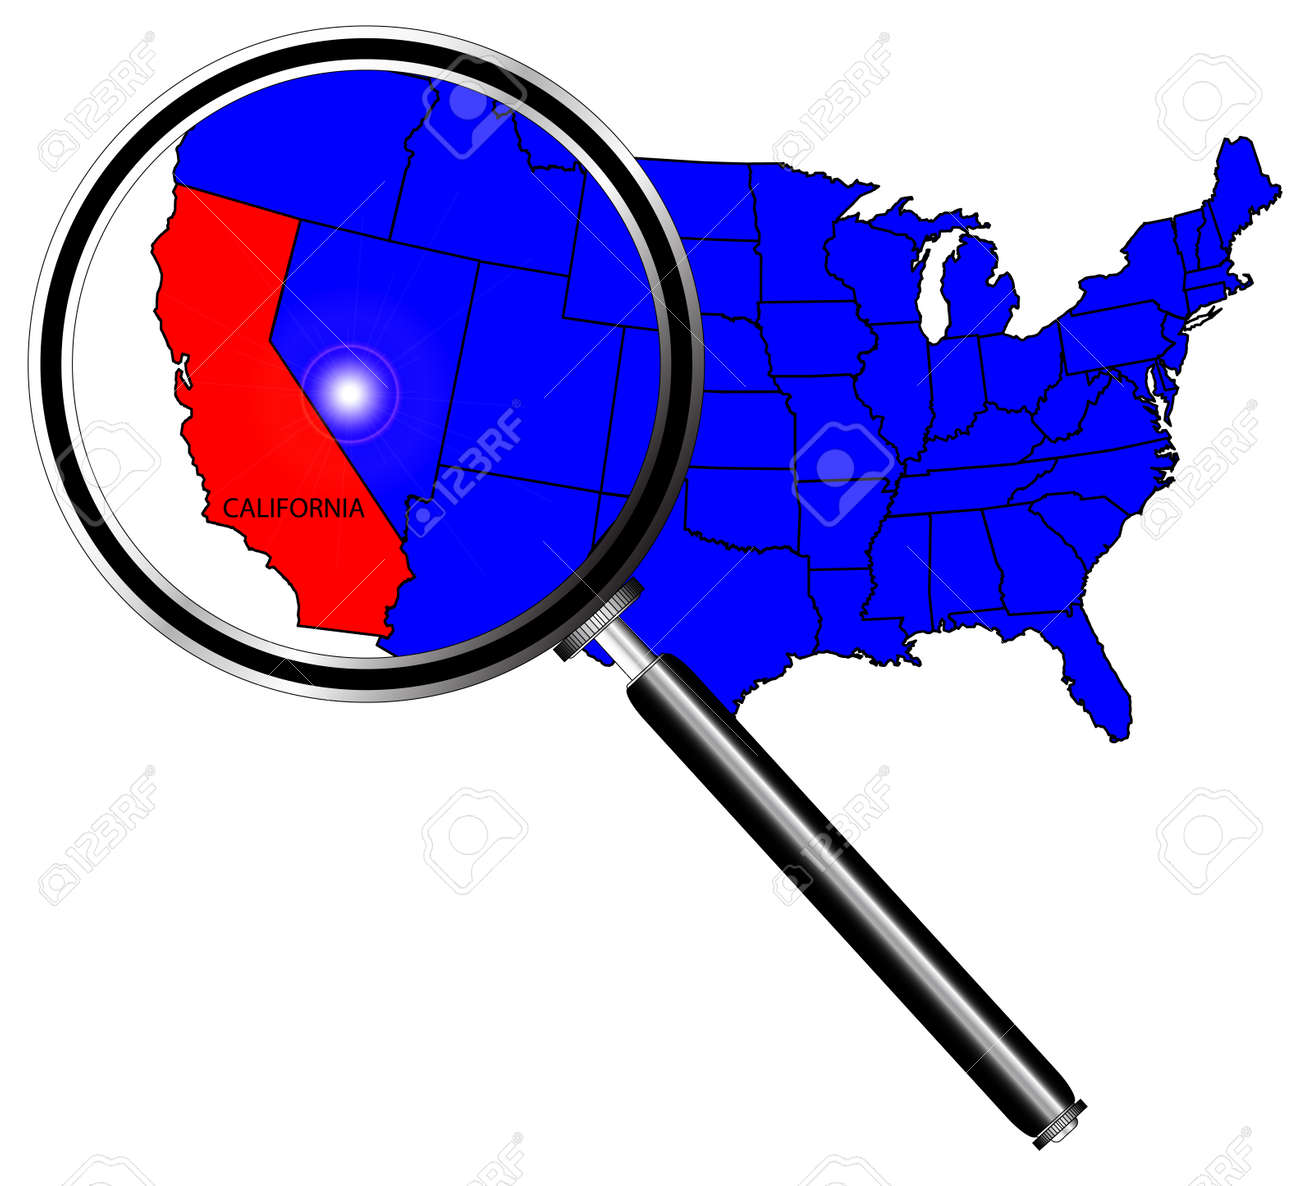 California Map Icon.California State Outline And Icon Inset Under A Magnifying Glass